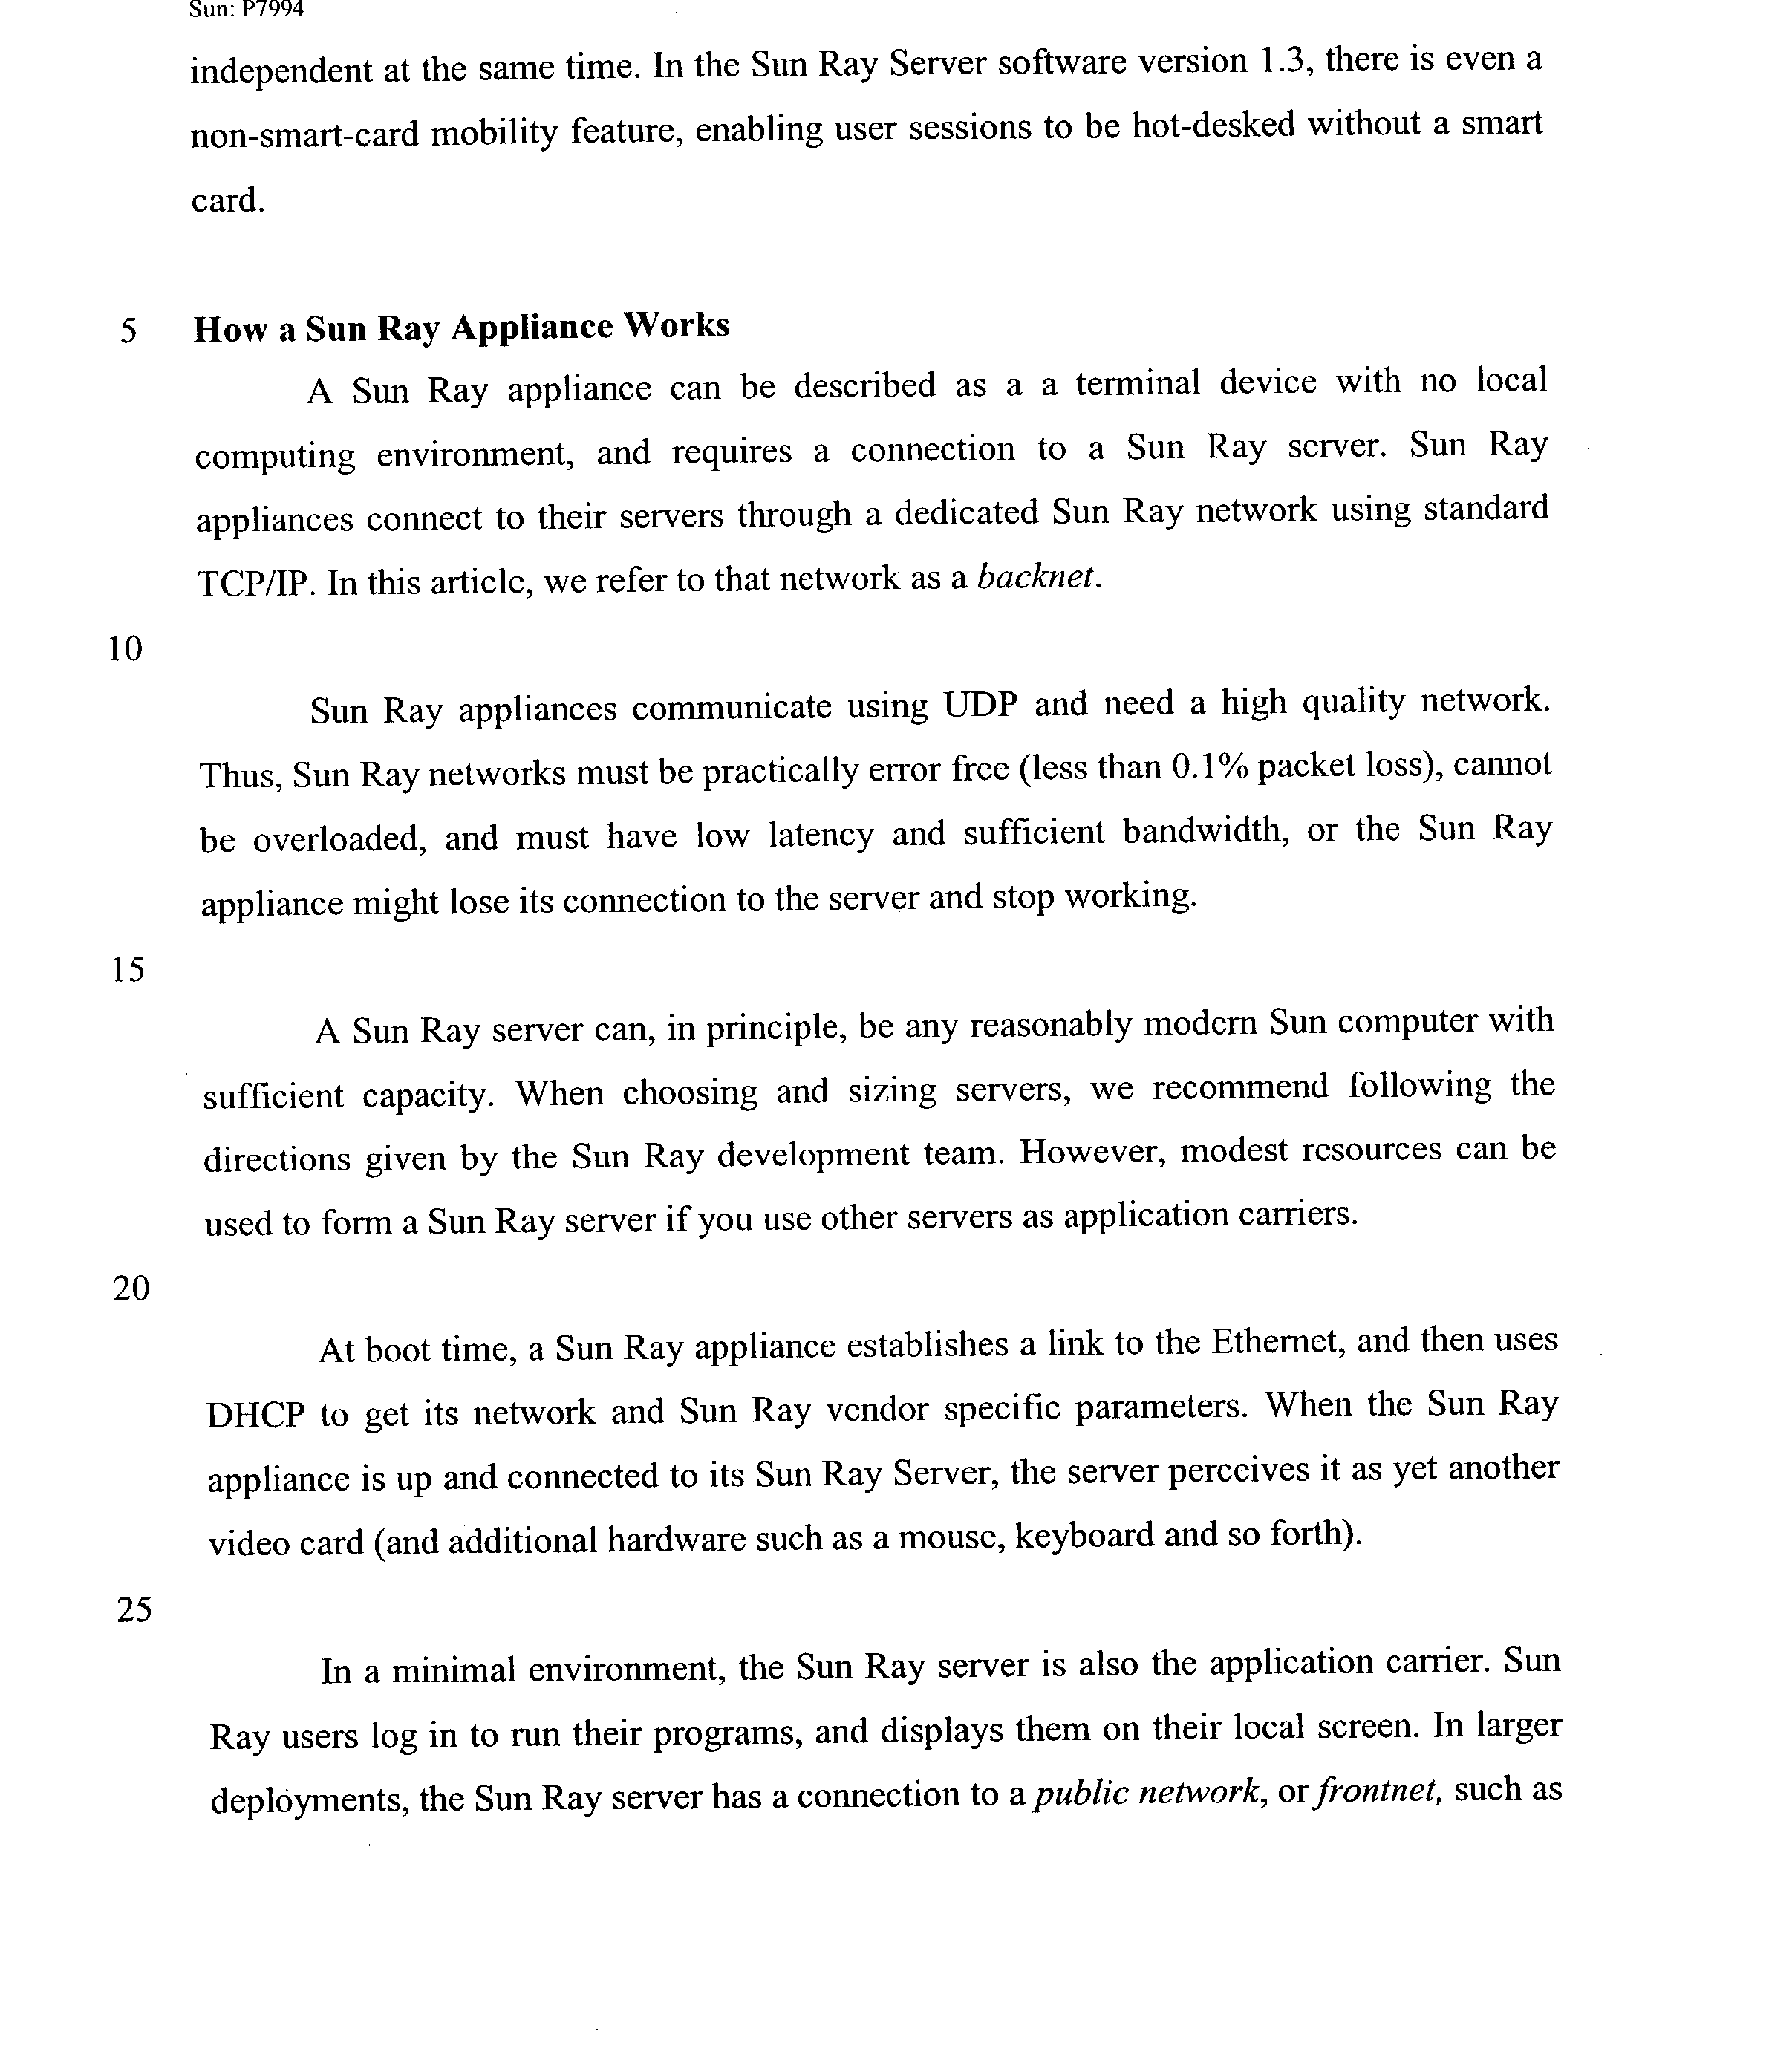 US20040039847A1 - Computer system, method and network